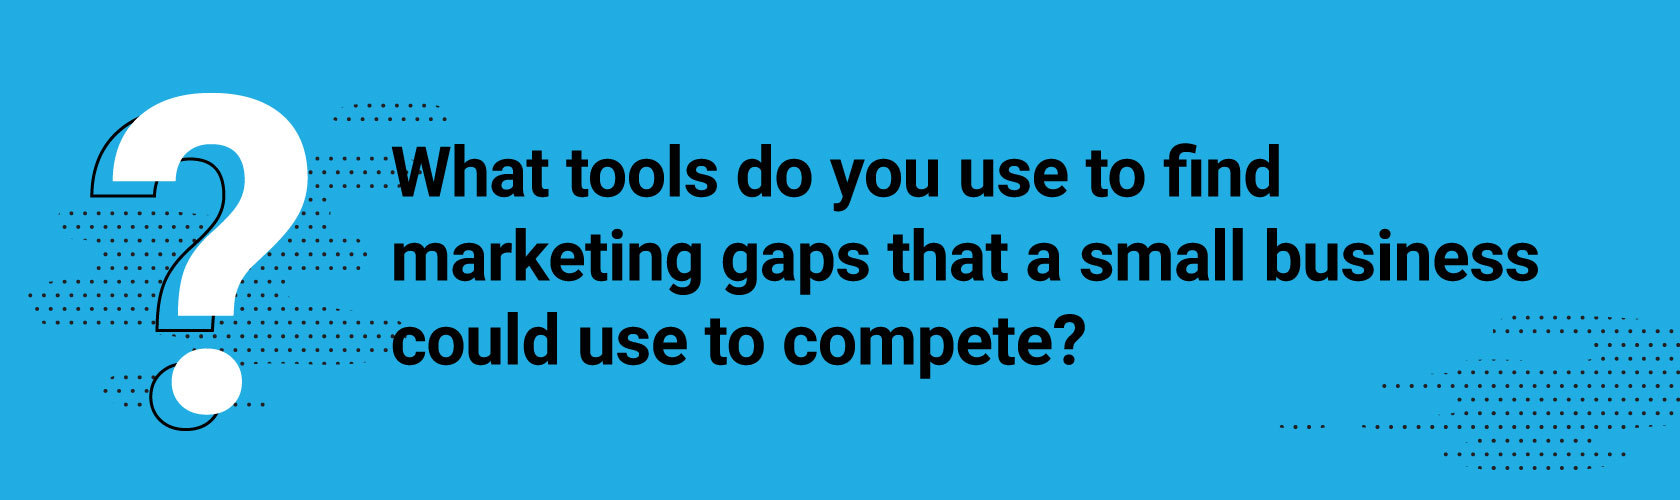 What tools do you use to find marketing gaps that a small business could use to compete?